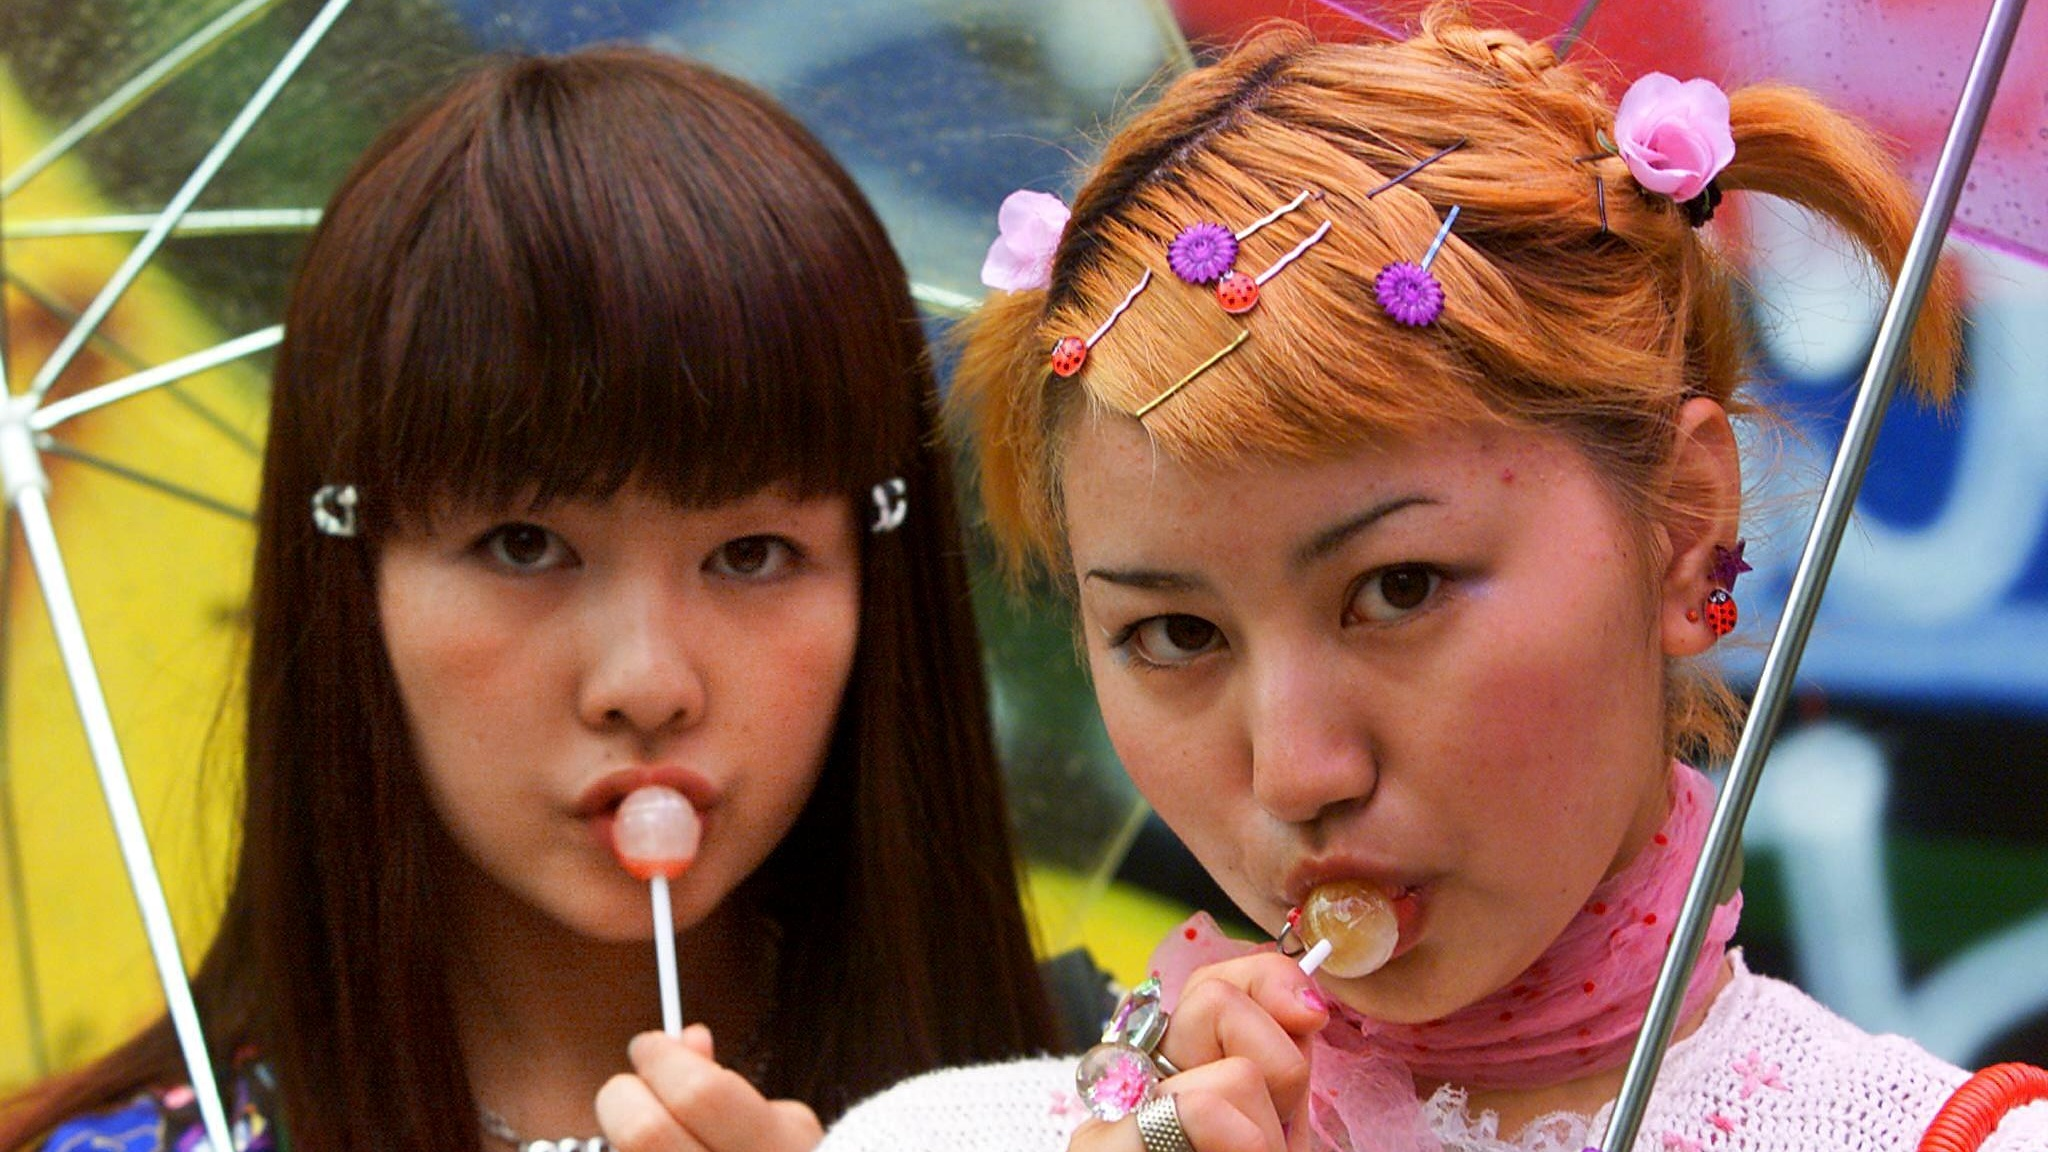 """TOKYO, JAPAN:  Eighteen-year-old student Yoko Sasaki (R) and her classmate Anna Shimasaki (L) pose for pictures on a street at Tokyo fashion district Harajuku, 17 June 2000.  Fashion conscious Japanese girls, referred to as """"kogyaru"""" in Japanese, often shape the future of fashion with their shopping patterns and dressing styles.      (ELECTRONIC IMAGE)   AFP PHOTO/Toru YAMANAKA (Photo credit should read TORU YAMANAKA/AFP/Getty Images)"""